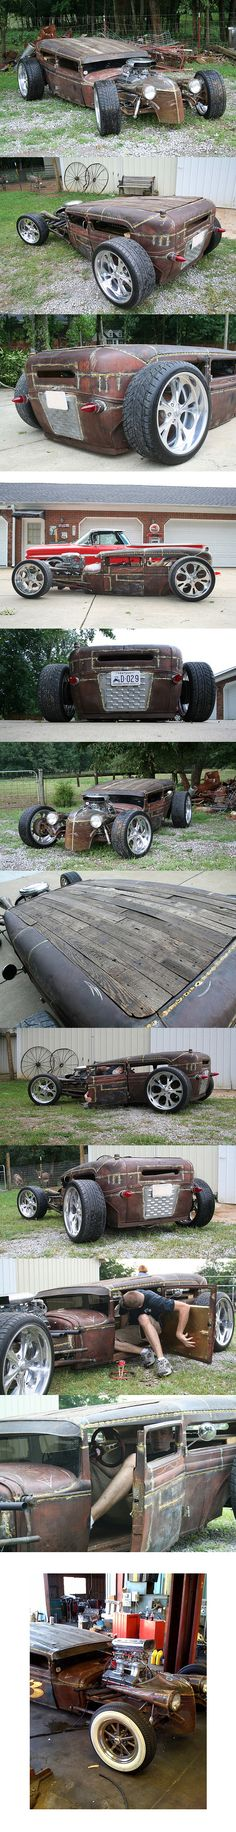 That is 1 Sick Rat Rod... See how tall man get in the car....